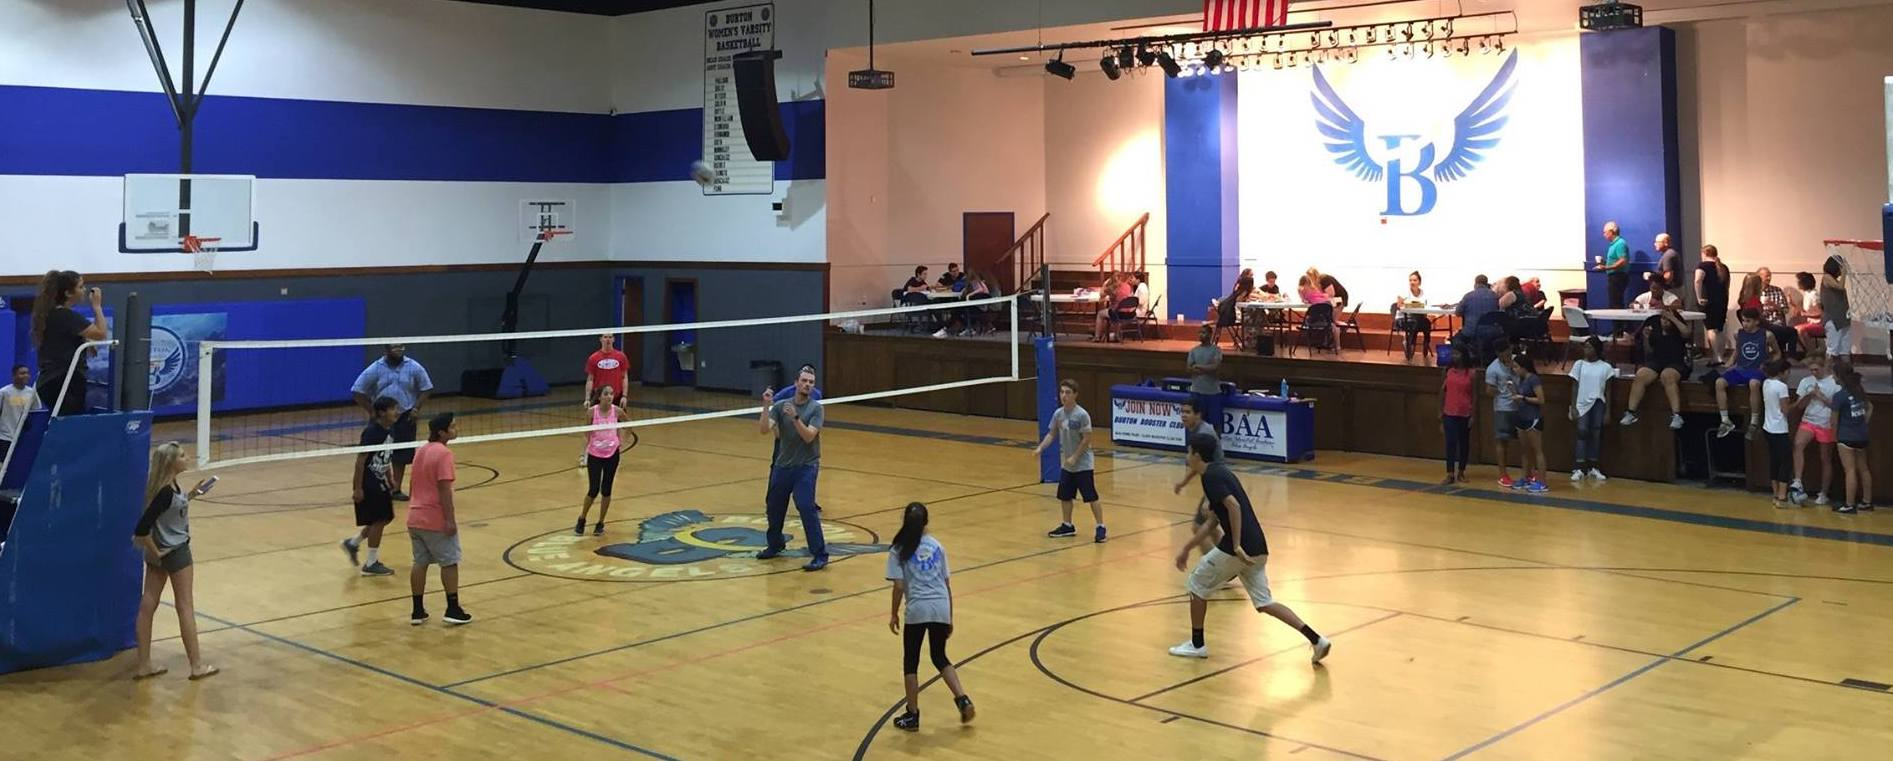 WOMEN'S VOLLEYBALL // SUNDAYS 5PM   Meets at Burton Adventist Academy Hayes Gym. This is exclusively for church ladies 18 and older. Location: Burton Adventist Academy Hayes Gymnasium, 4611 Kelly Elliott Rd, Arlington For more information contact  Connie Dickerson .